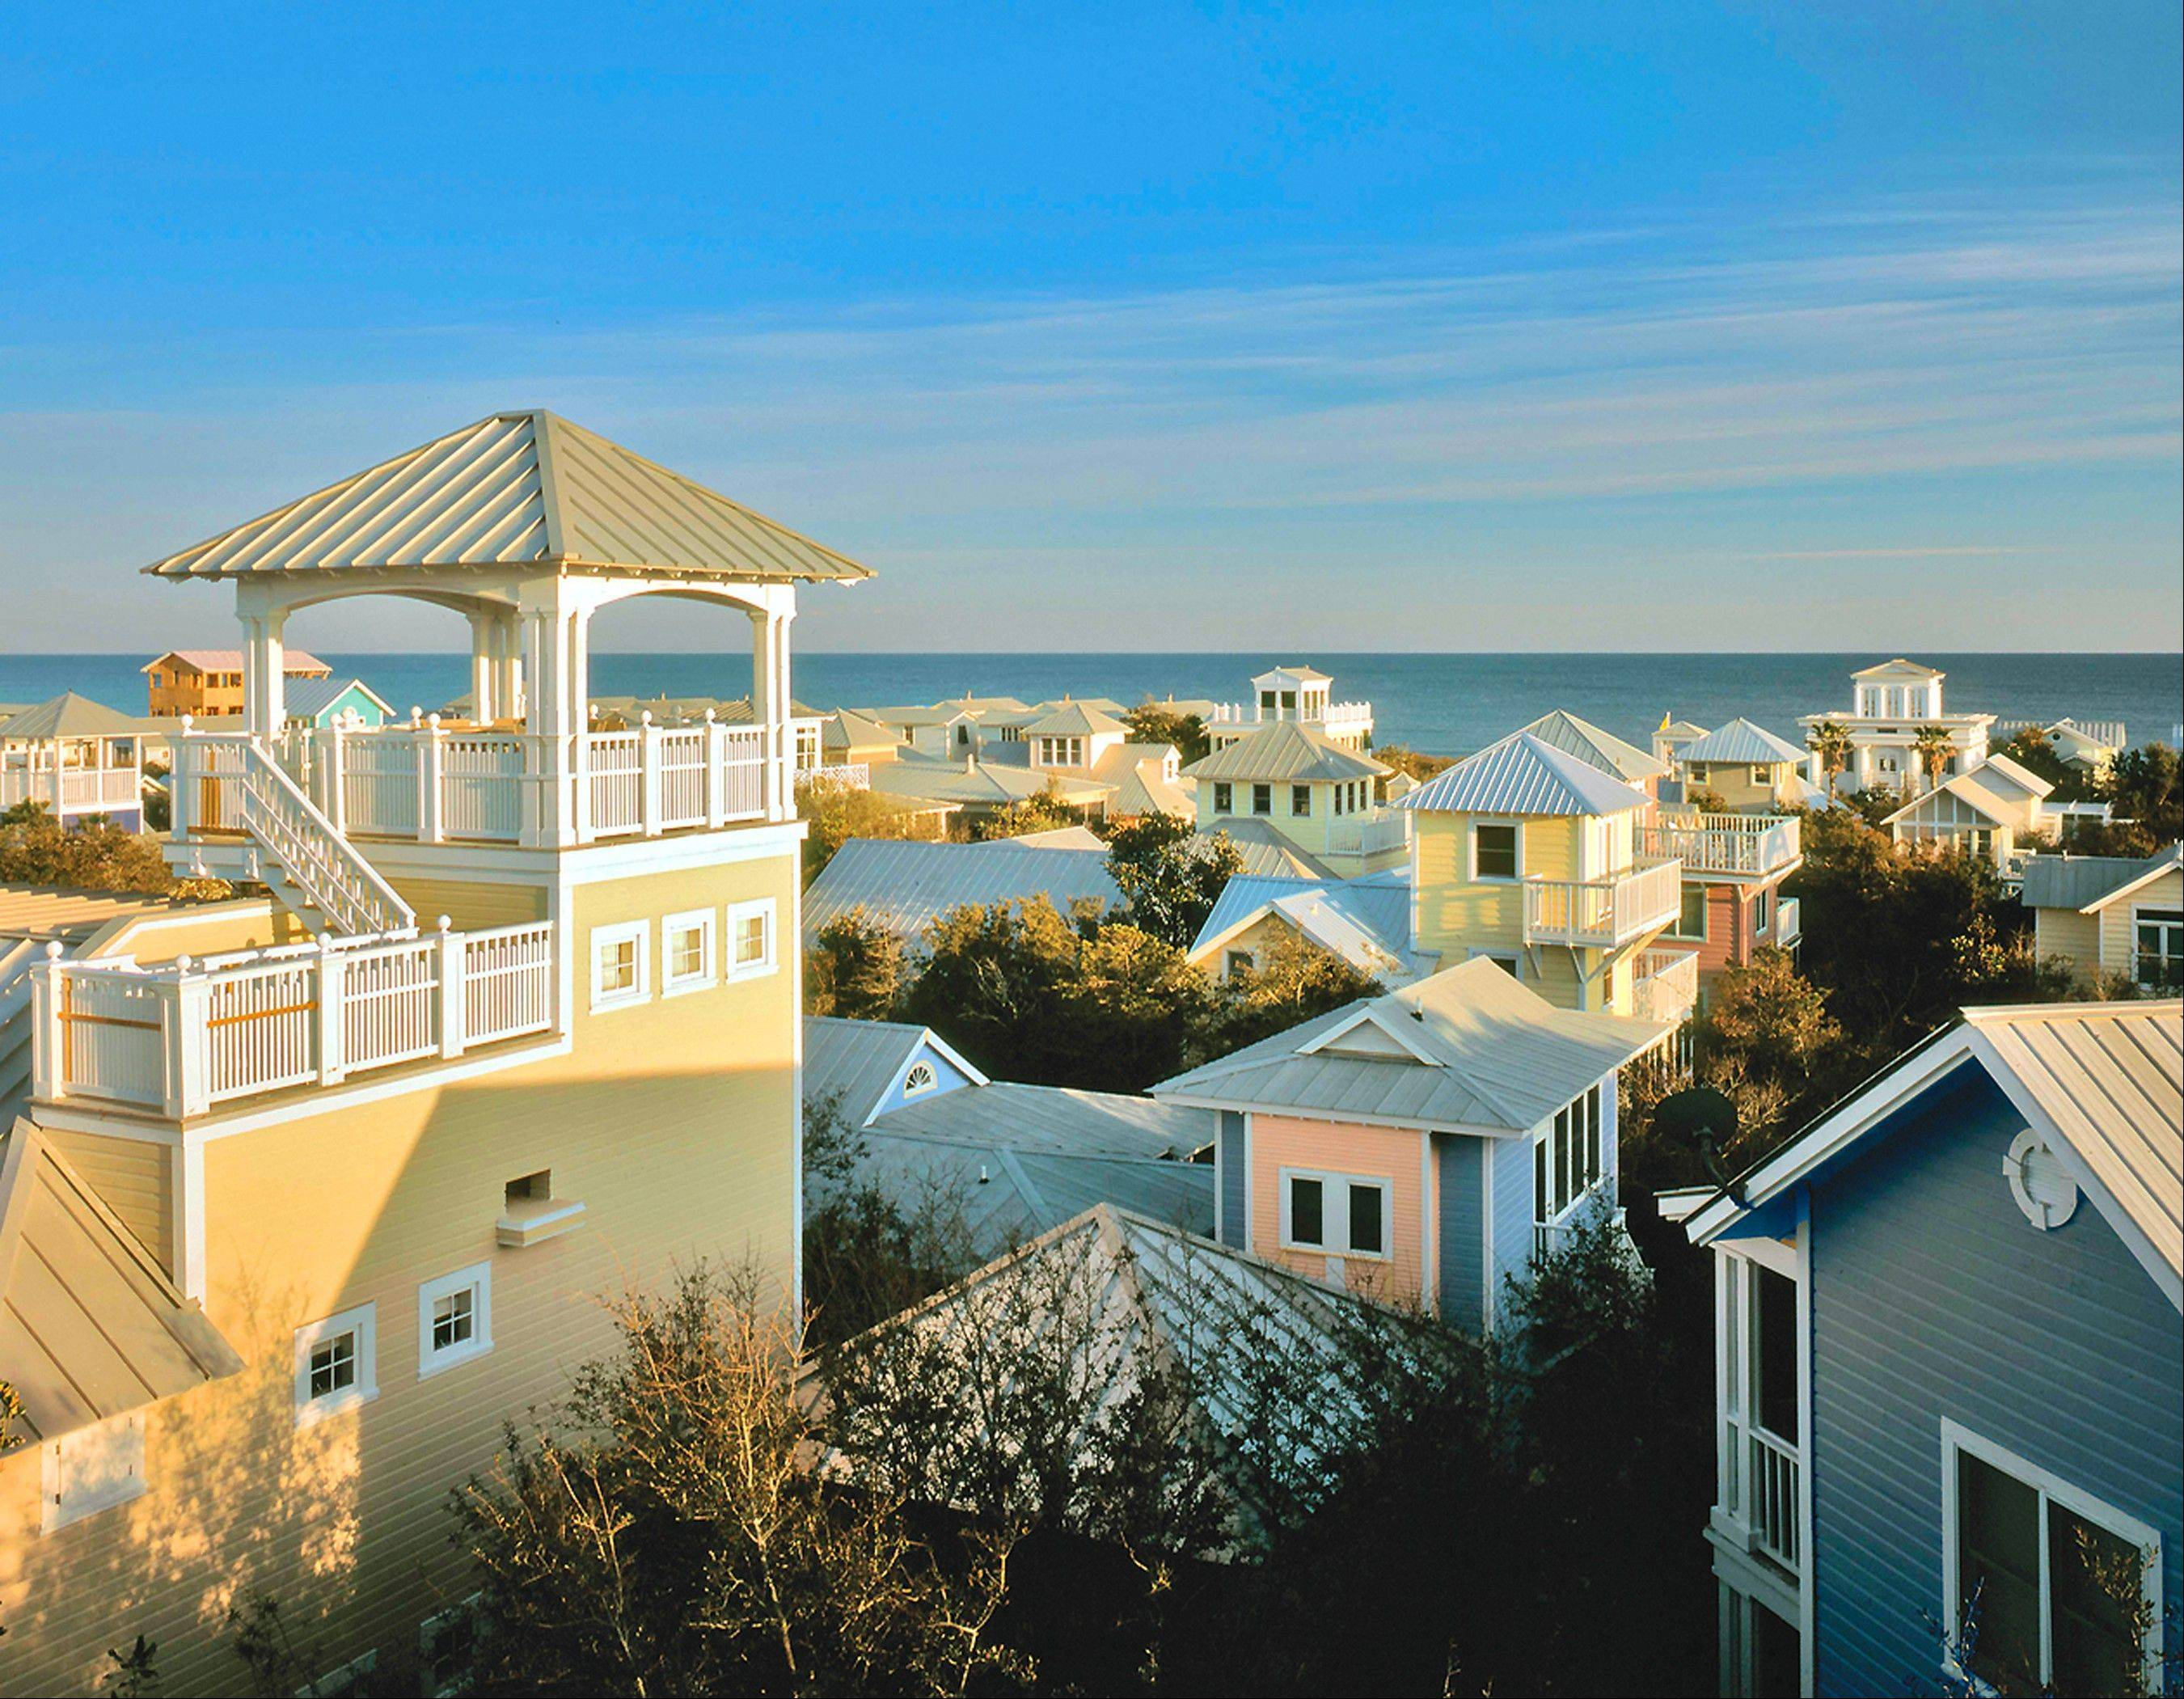 The picturesque town of Seaside, located in the Florida Panhandle, is known for its pastel-colored homes and beautifully landscaped walkways and public areas.